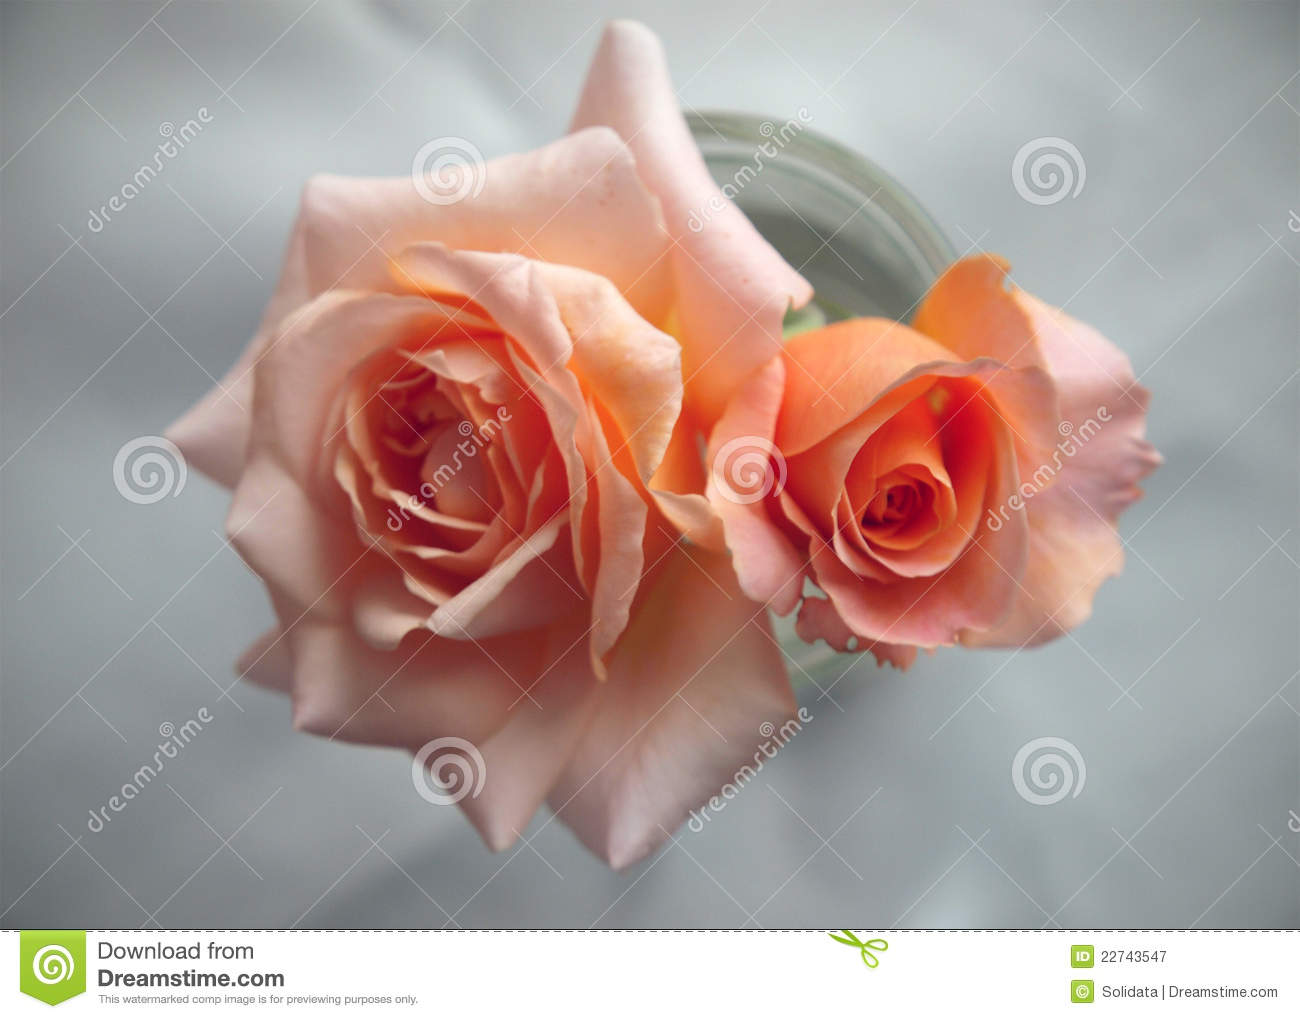 Peach Colored Roses For Wedding Invitation Stock Image - Image of ...